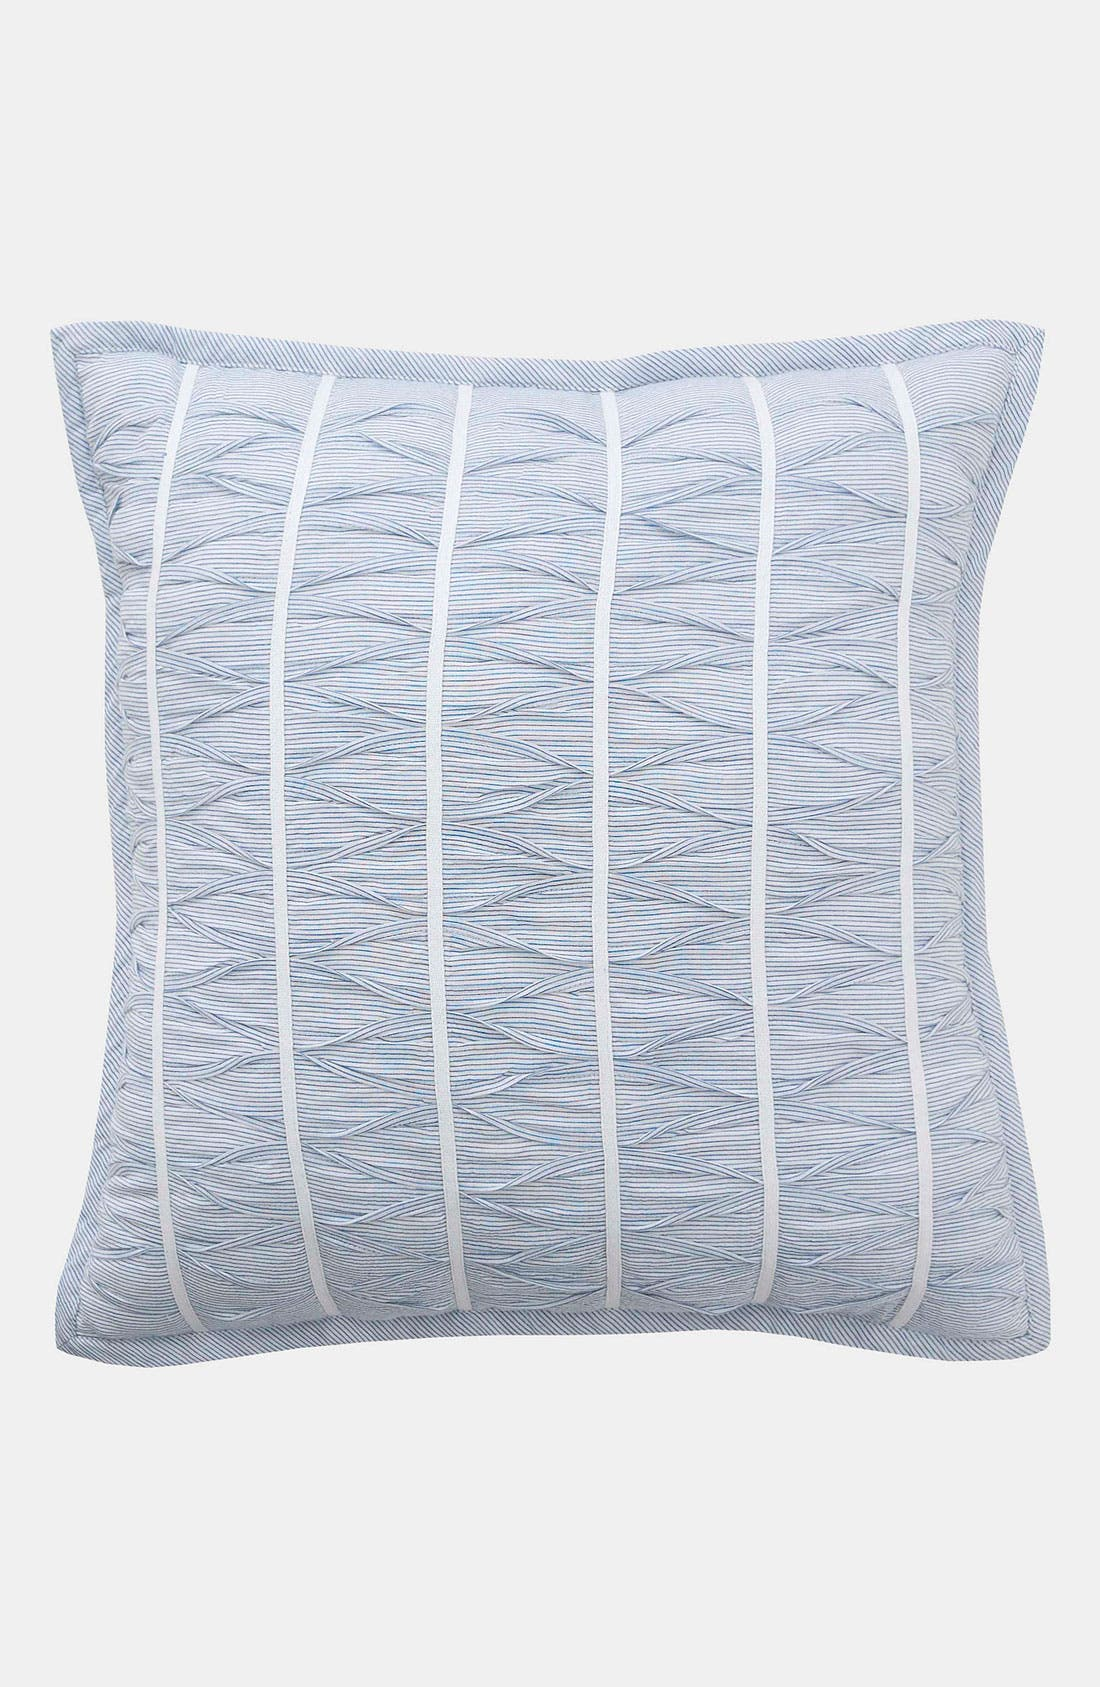 Alternate Image 1 Selected - DKNY 'Pure Innocence' Pillow